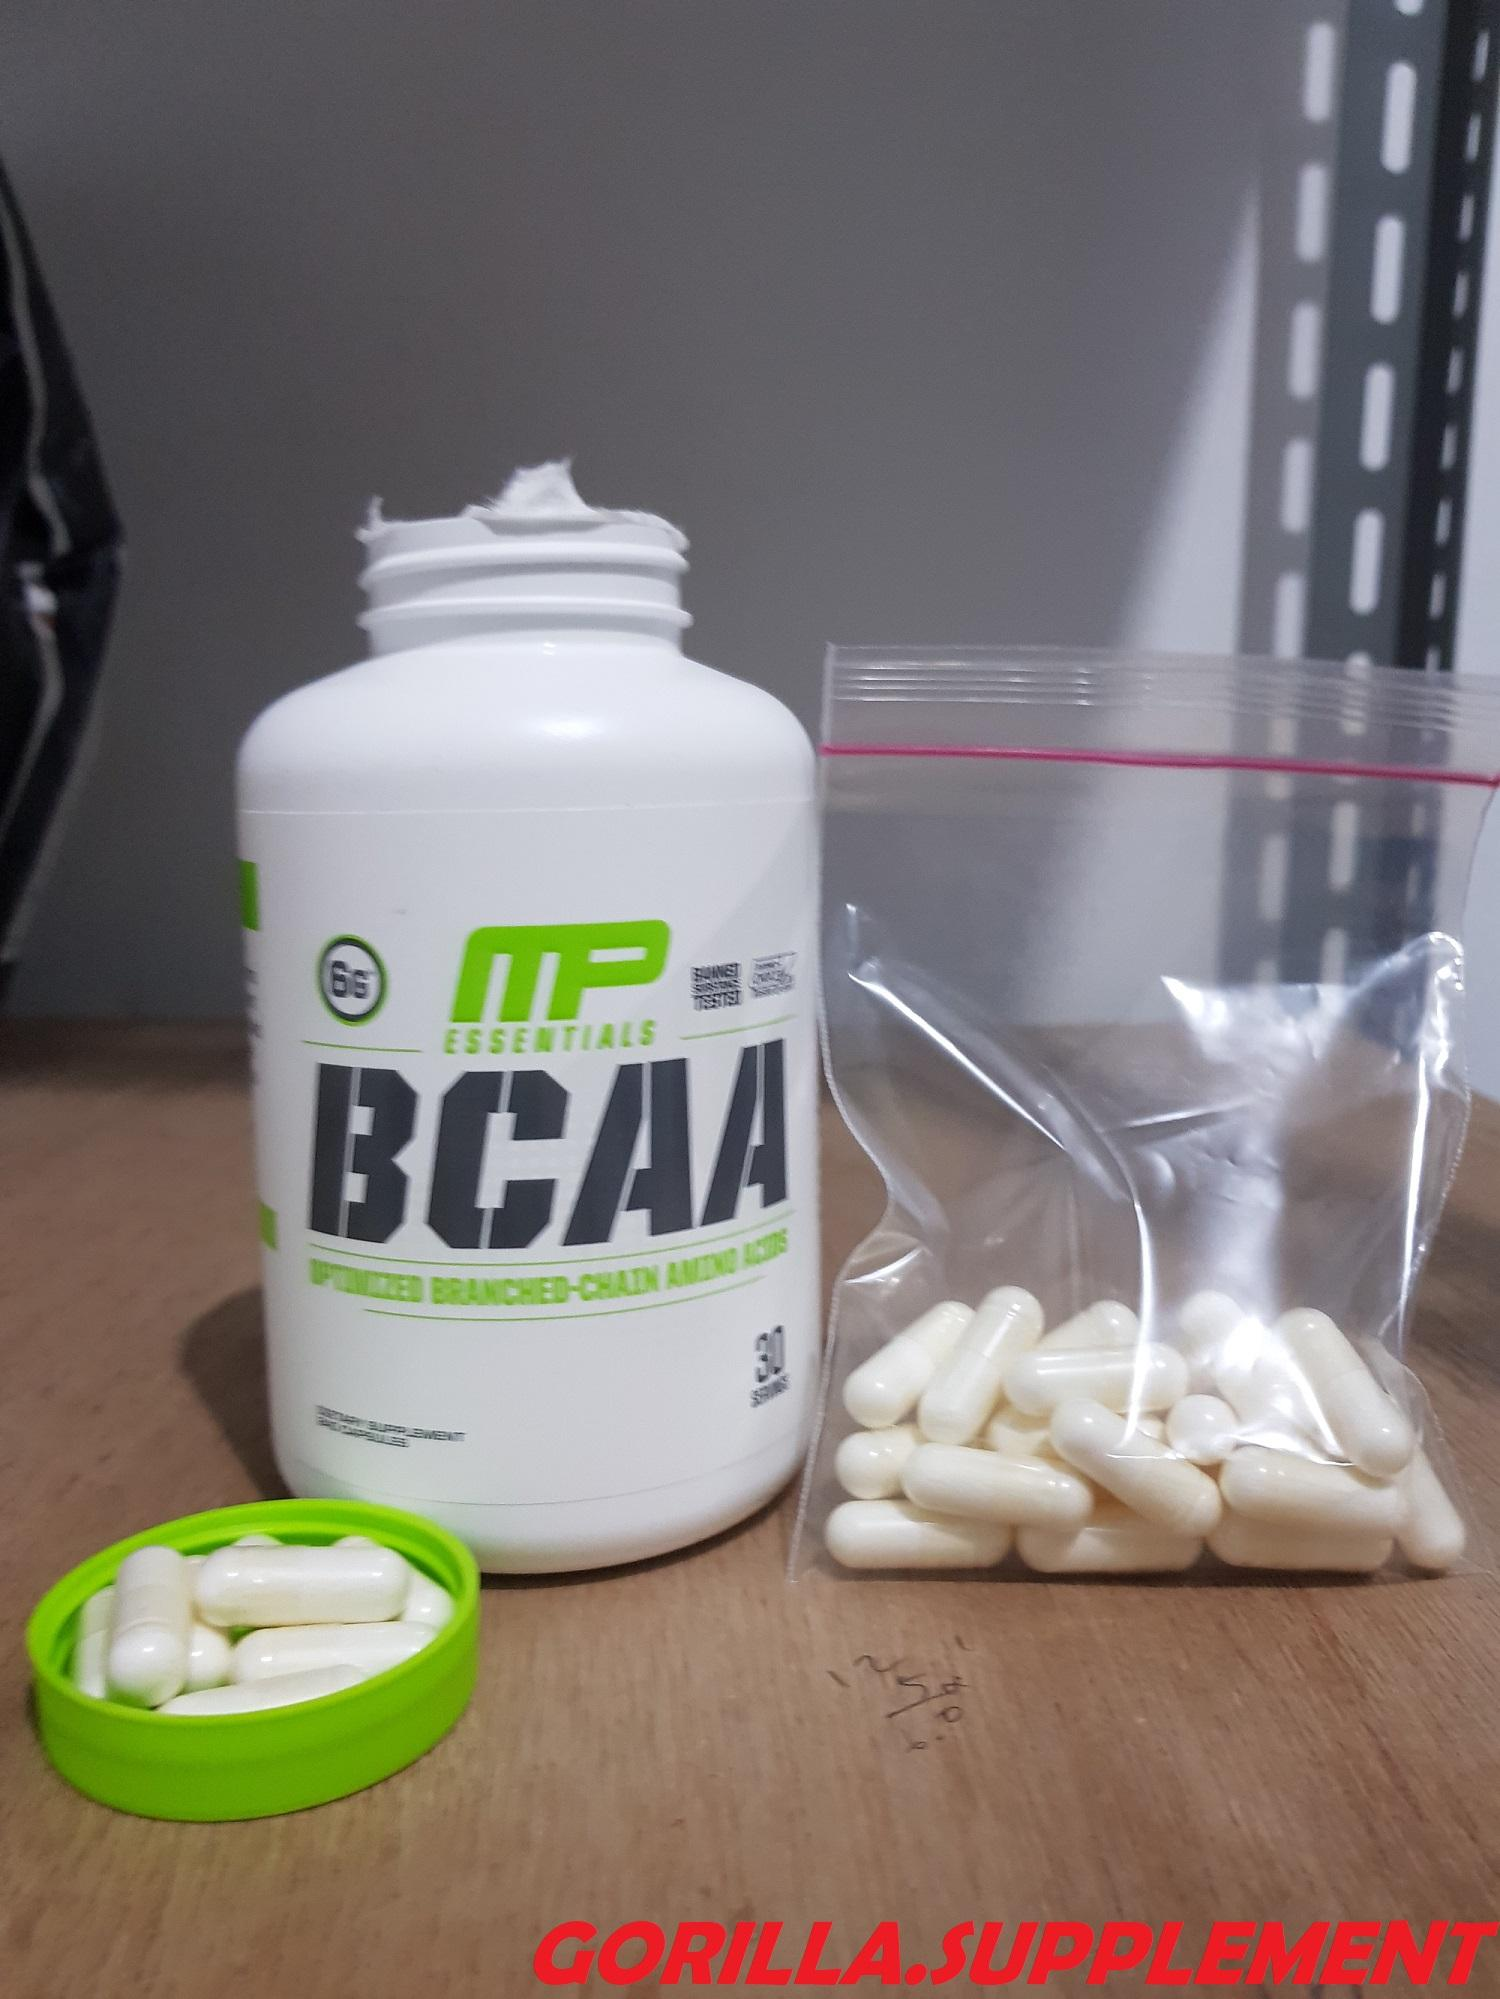 New Musclepharm - Mp Bcaa Ecer 50 Capsules By Gorilla.supplement.